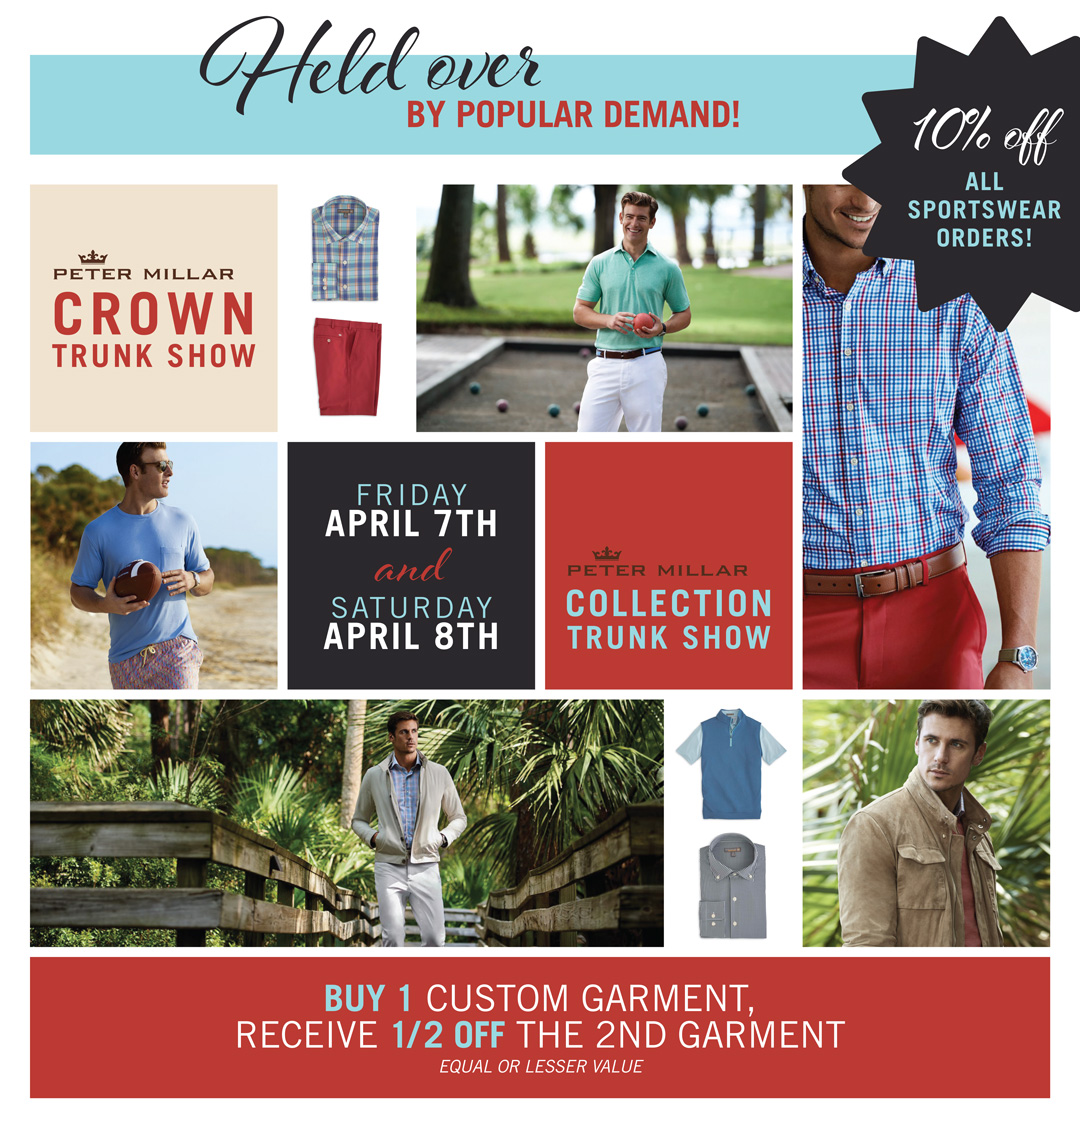 Back by popular demand! Peter Milar Crown Trunk Show